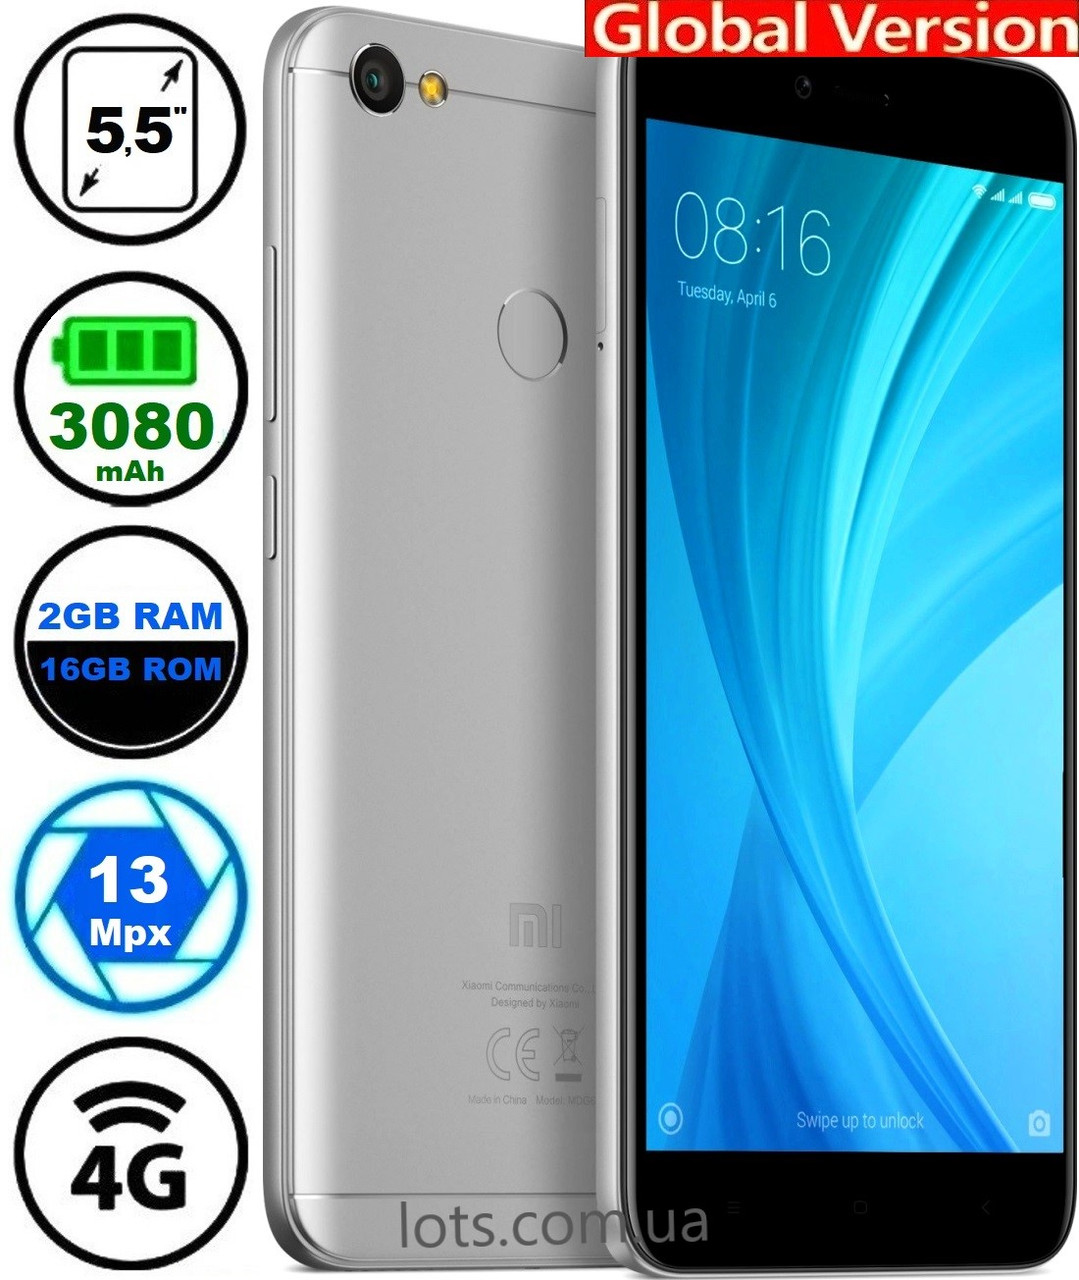 Смартфон Xiaomi Redmi Note 5A 2/16Gb Grey 4G Global